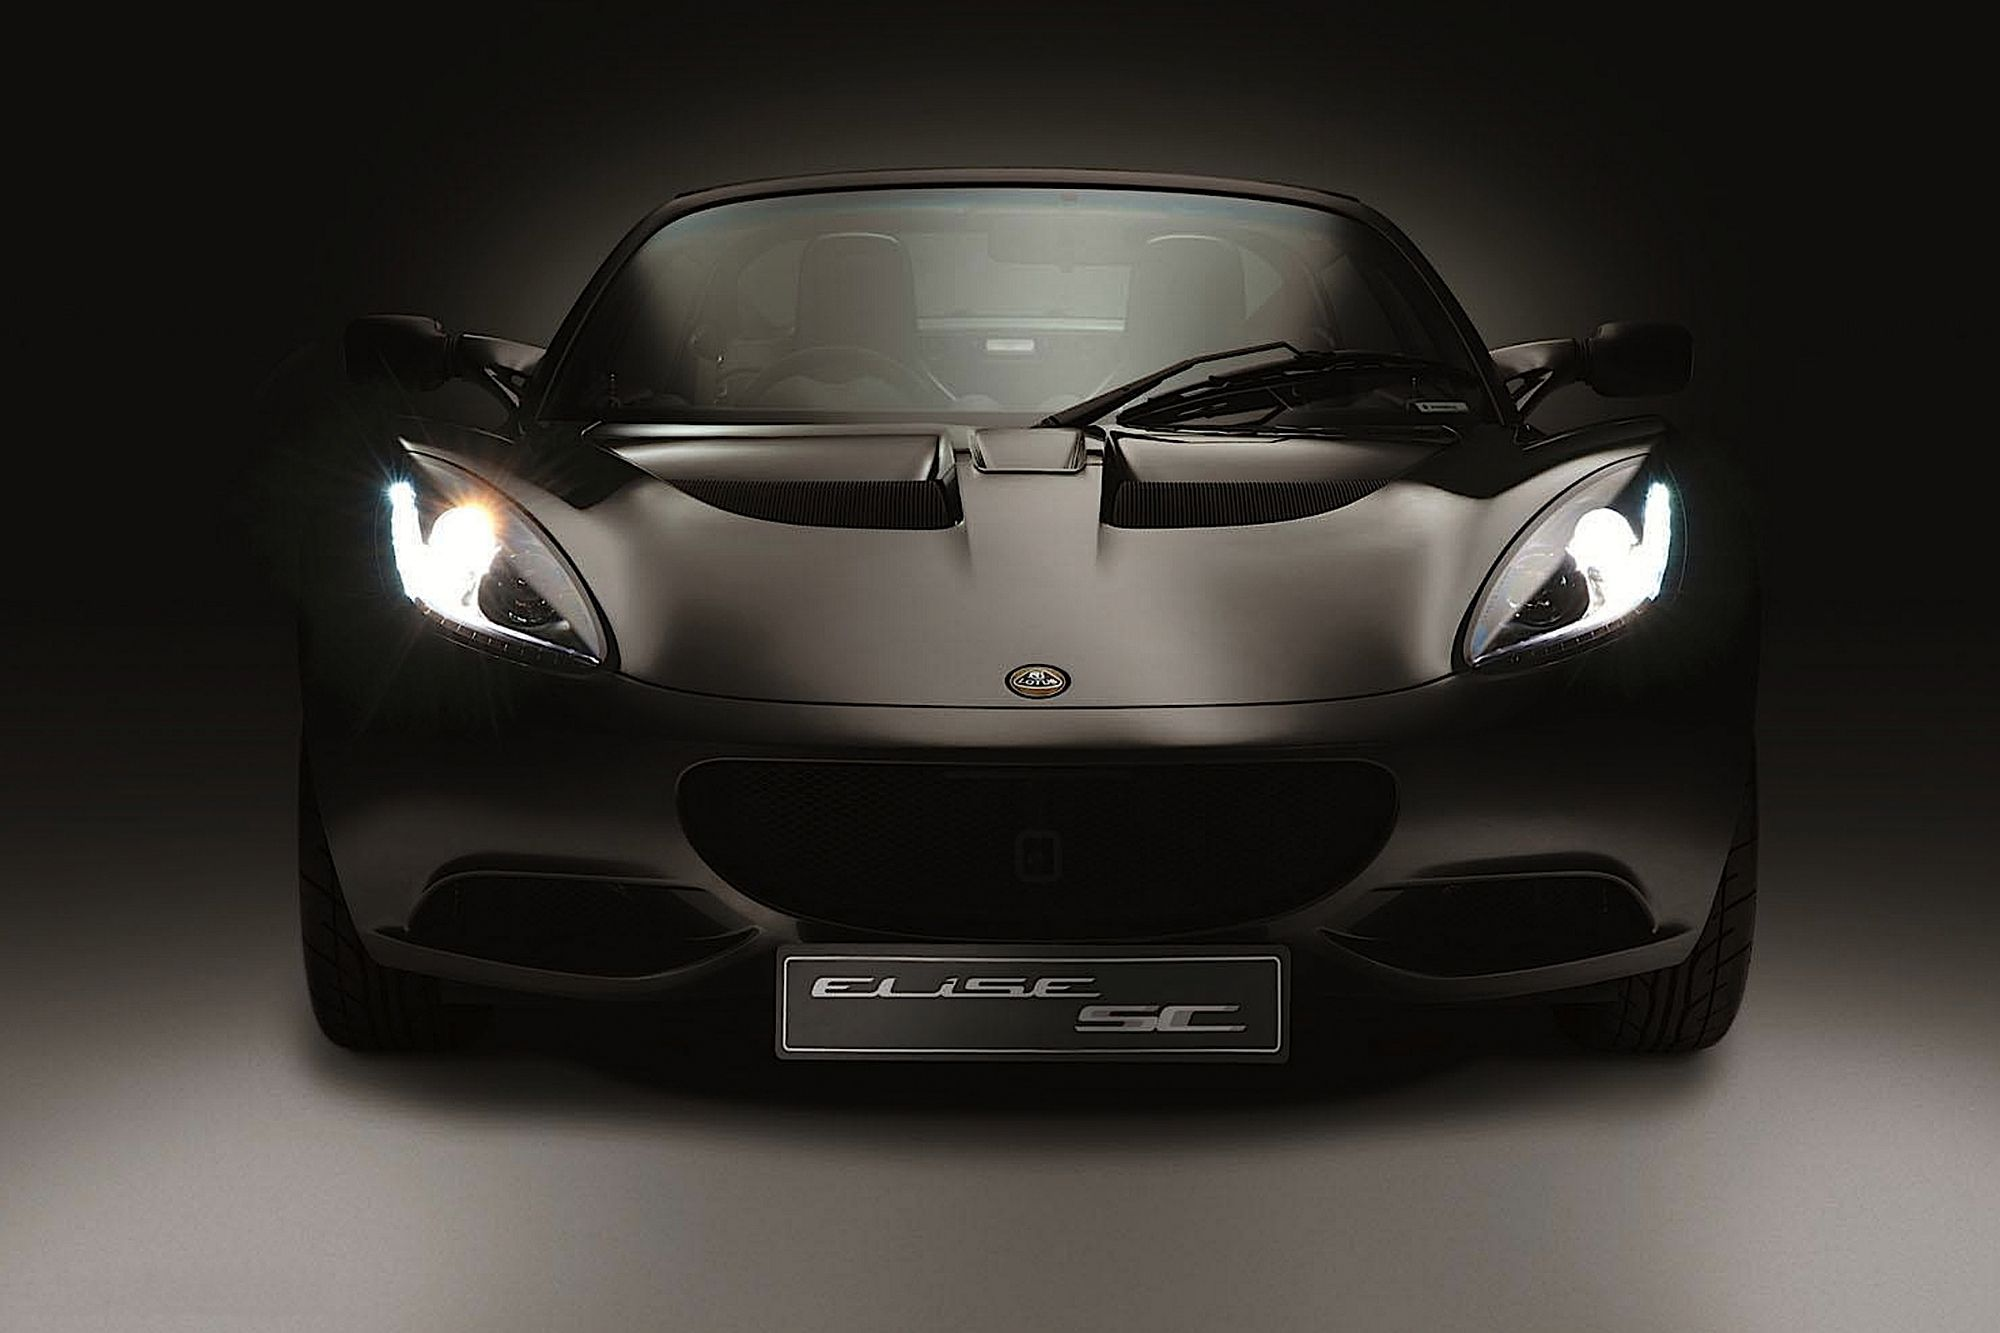 Sport Wallpaper Black: Black Sport Cars Wallpapers 27 High Resolution Wallpaper